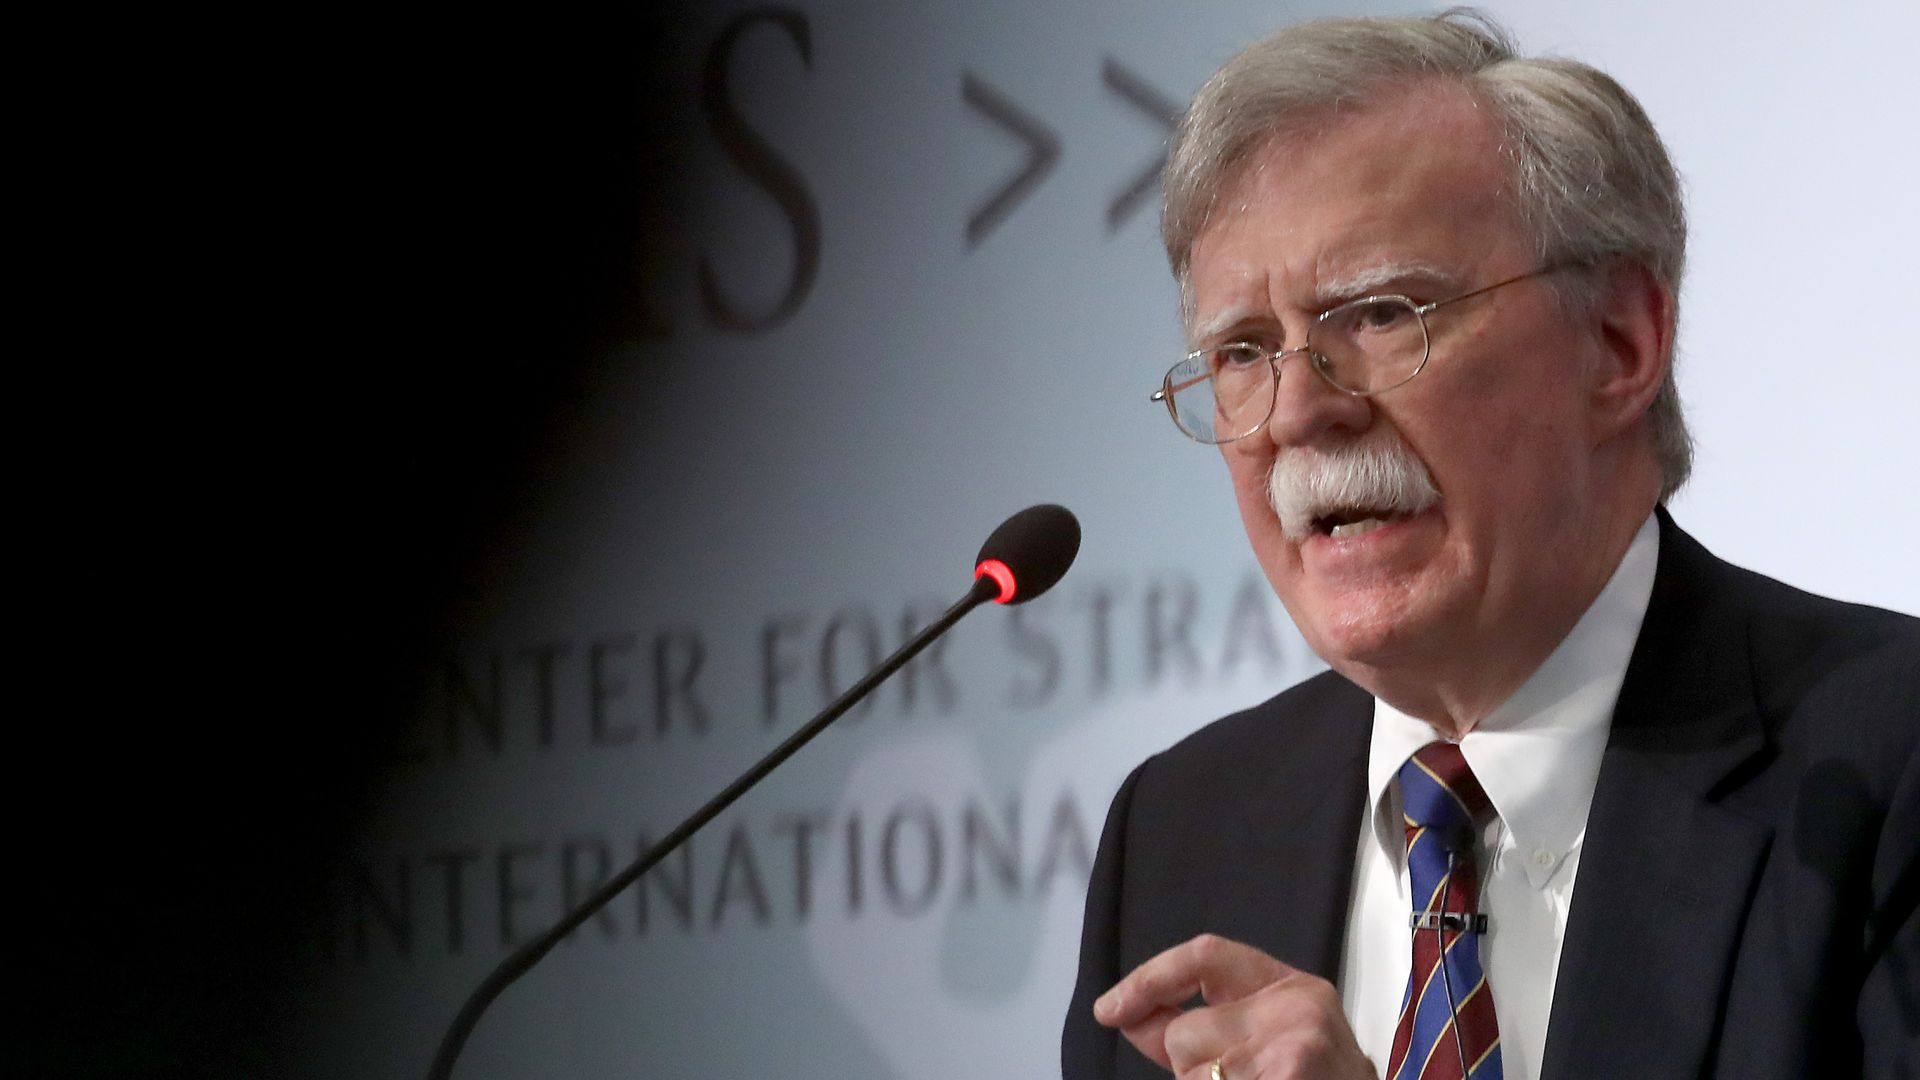 John Bolton lays into Trump's foreign policy approach in private speech